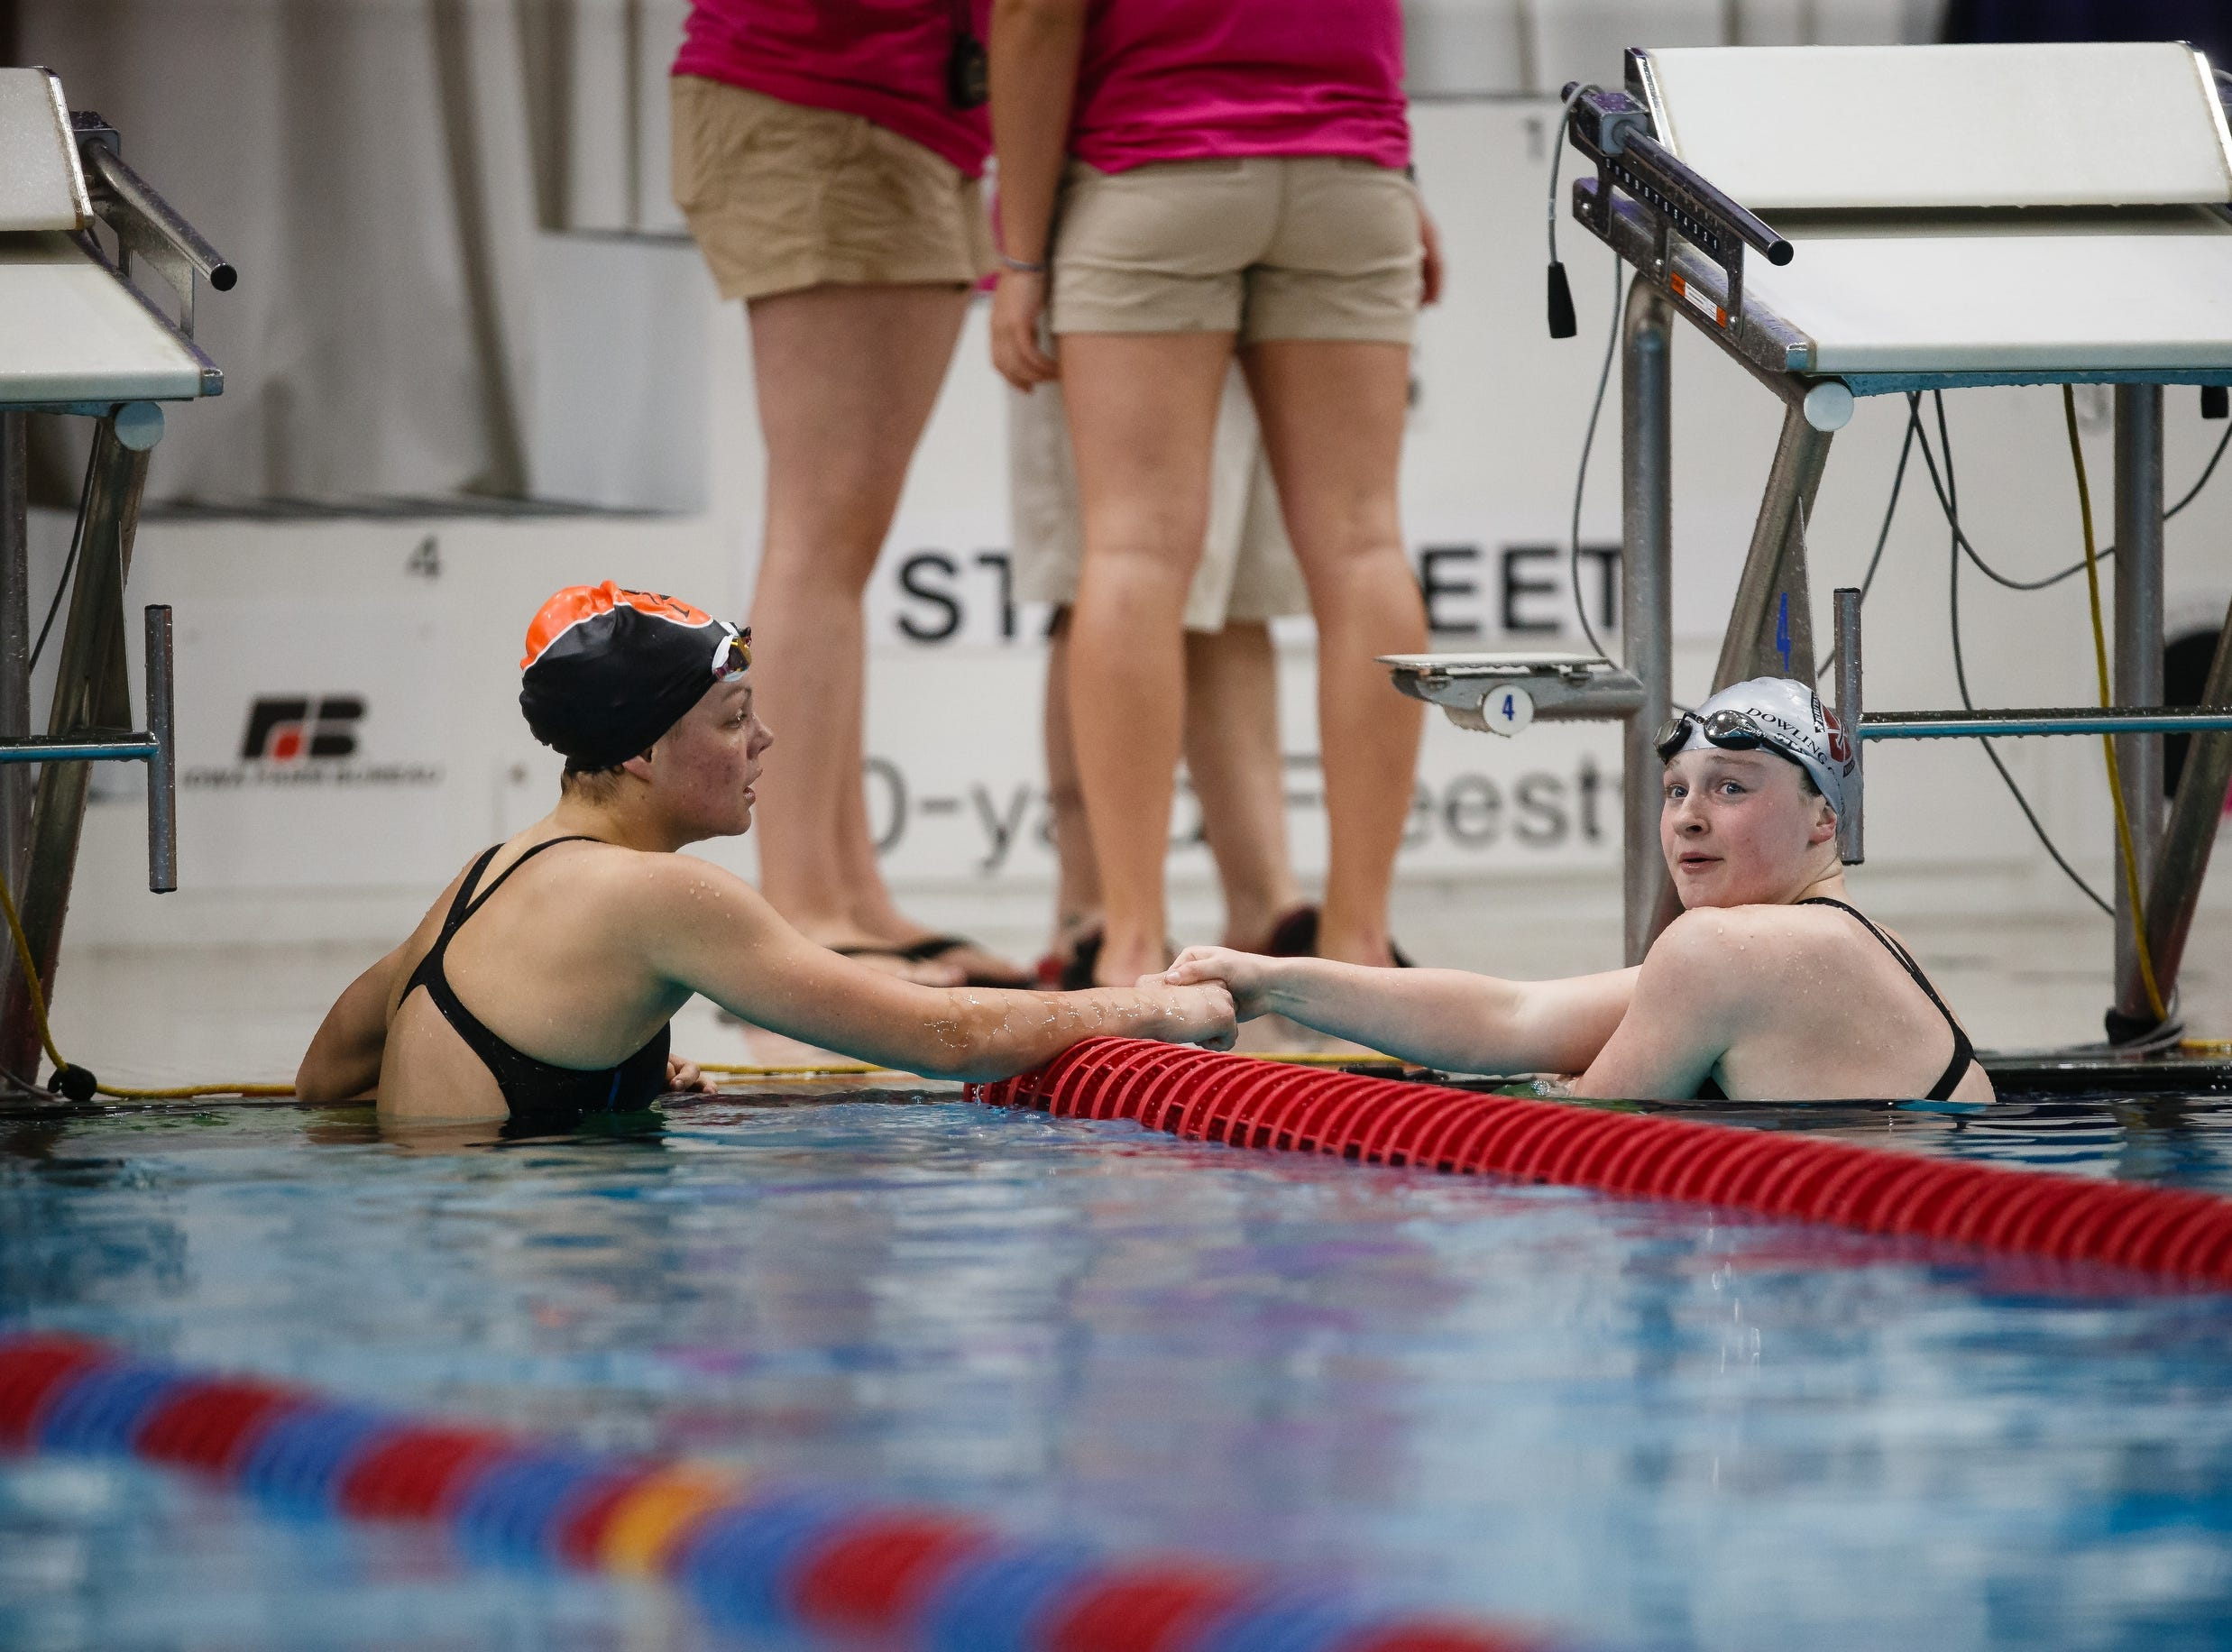 Dowling Catholic's Berit Quass congratulates Ames' Annie Galvin after they raced the 100 yard butterfly at the Iowa girls state swimming meet on Saturday, Nov. 3, 2018, in Marshalltown.